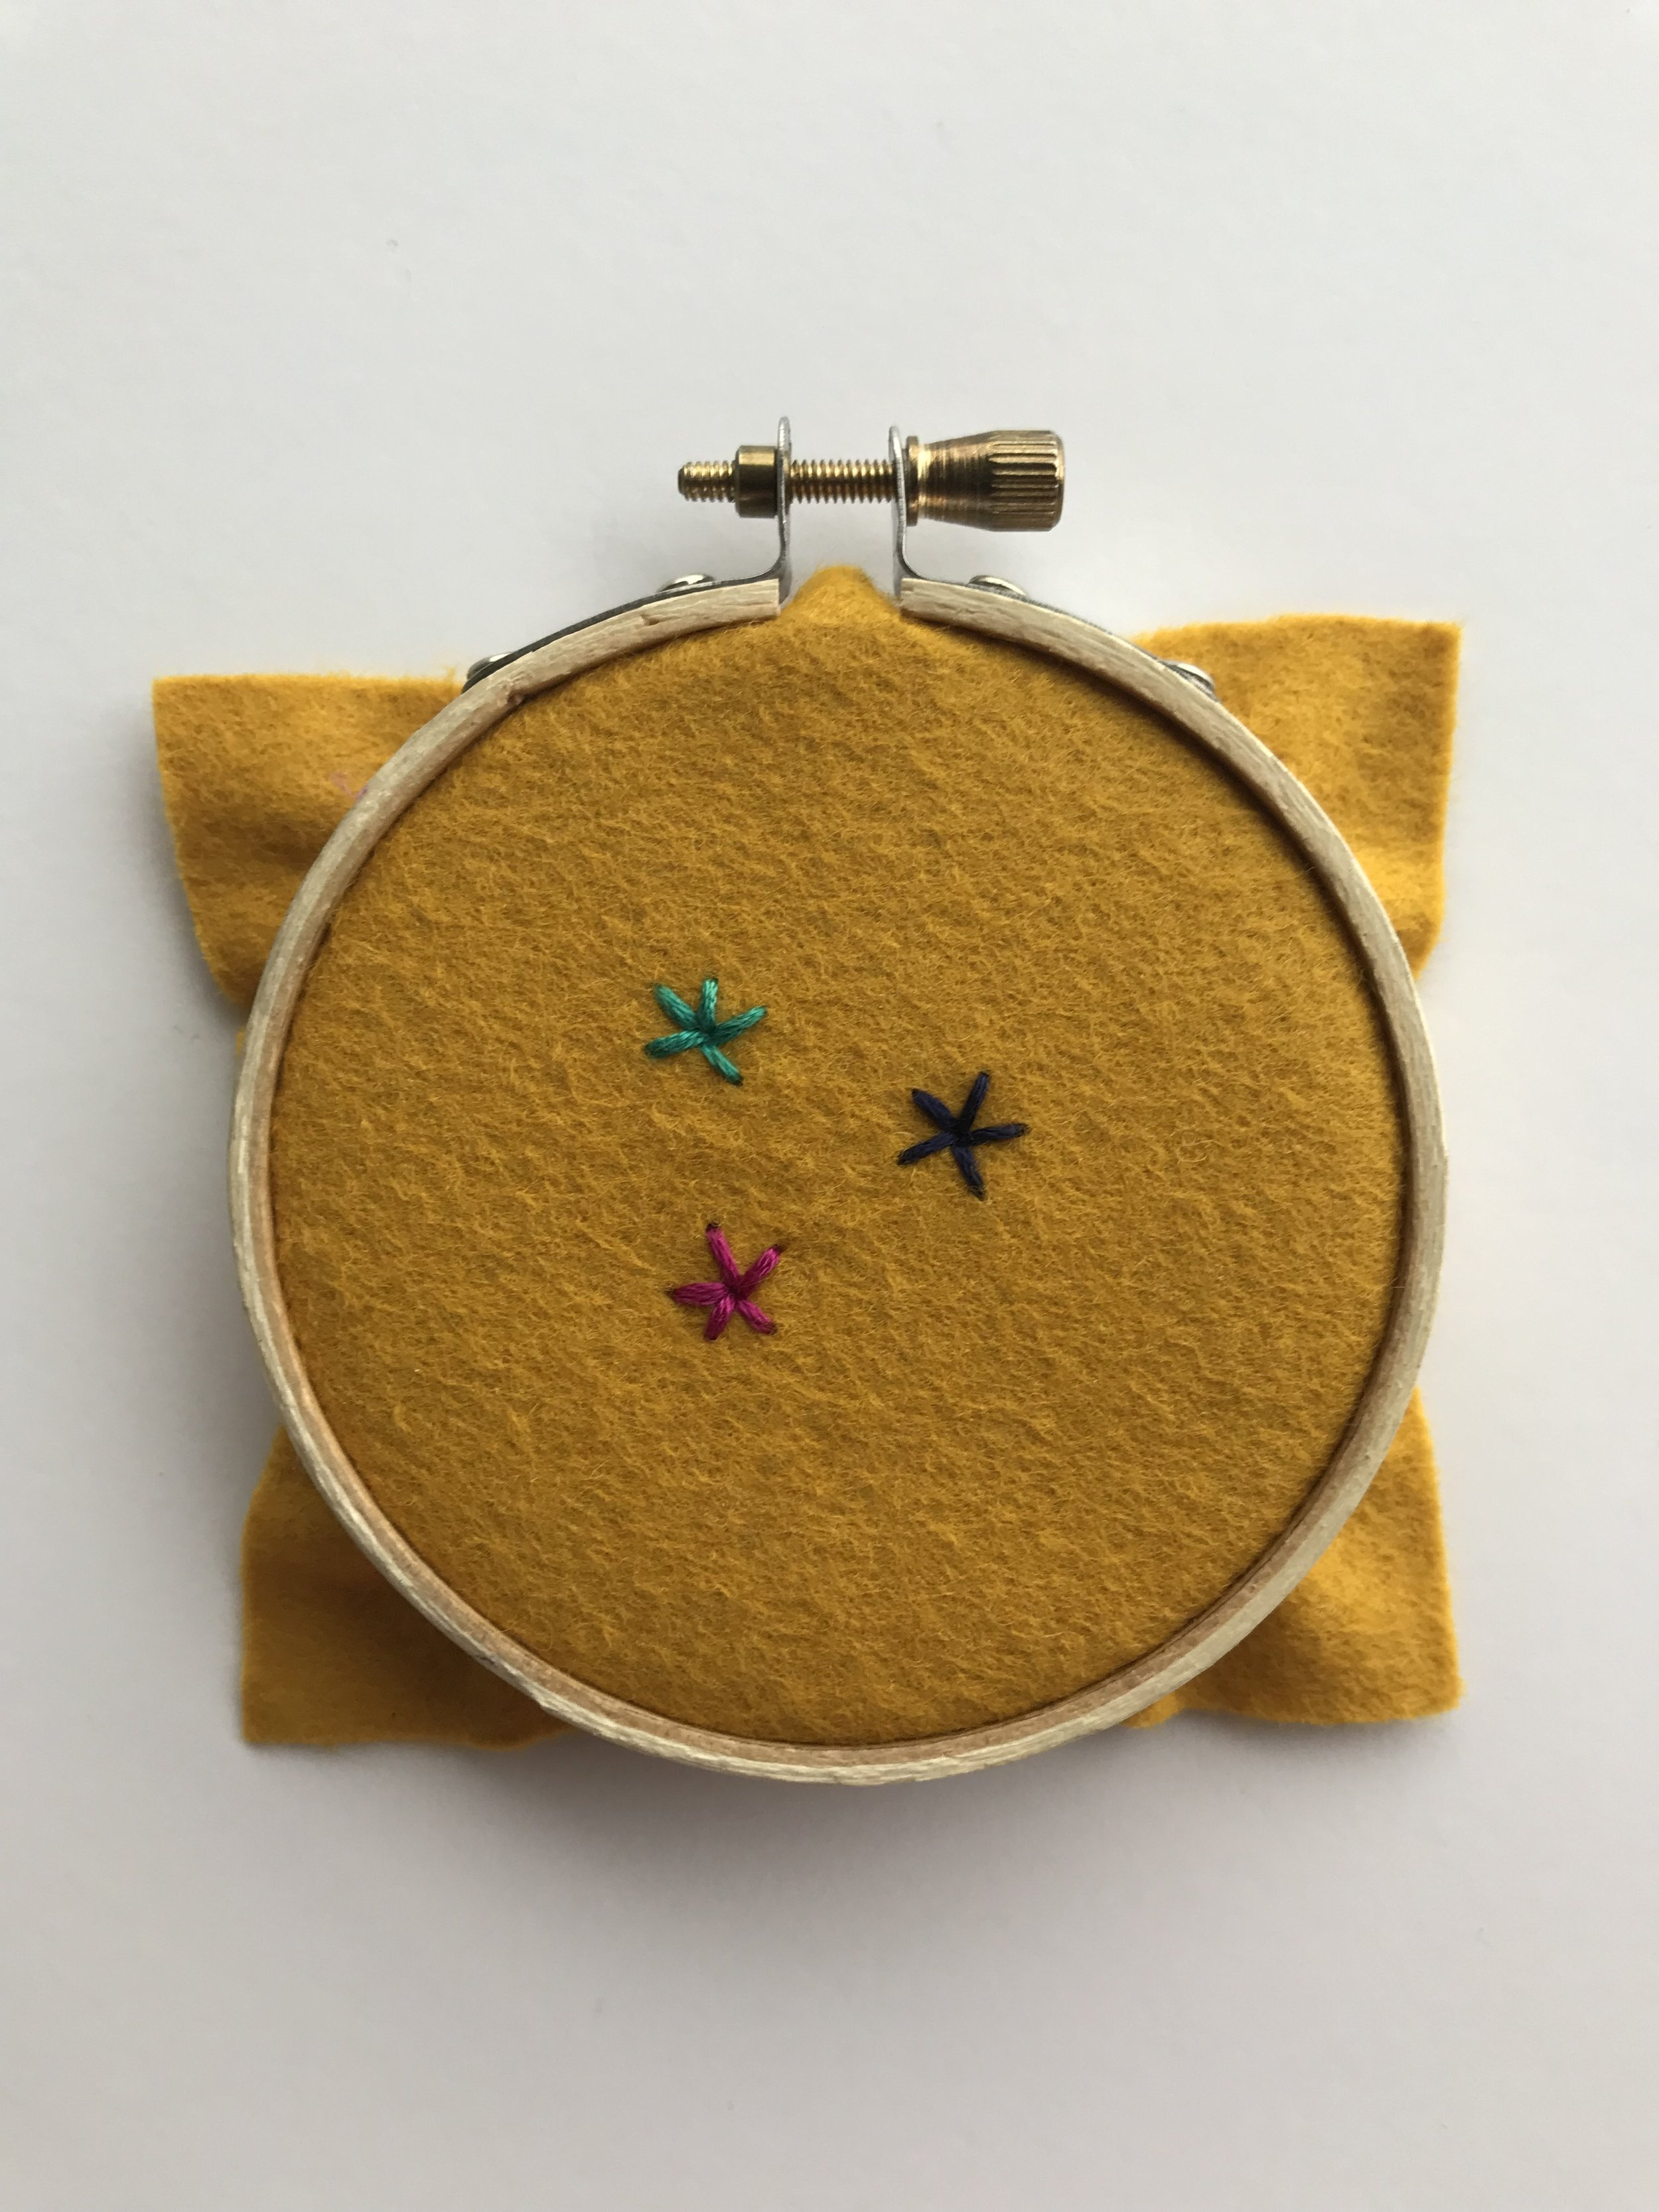 Add your favorite embroidery stitches. Visit my    YouTube channel    to see how to embroider these stitches.